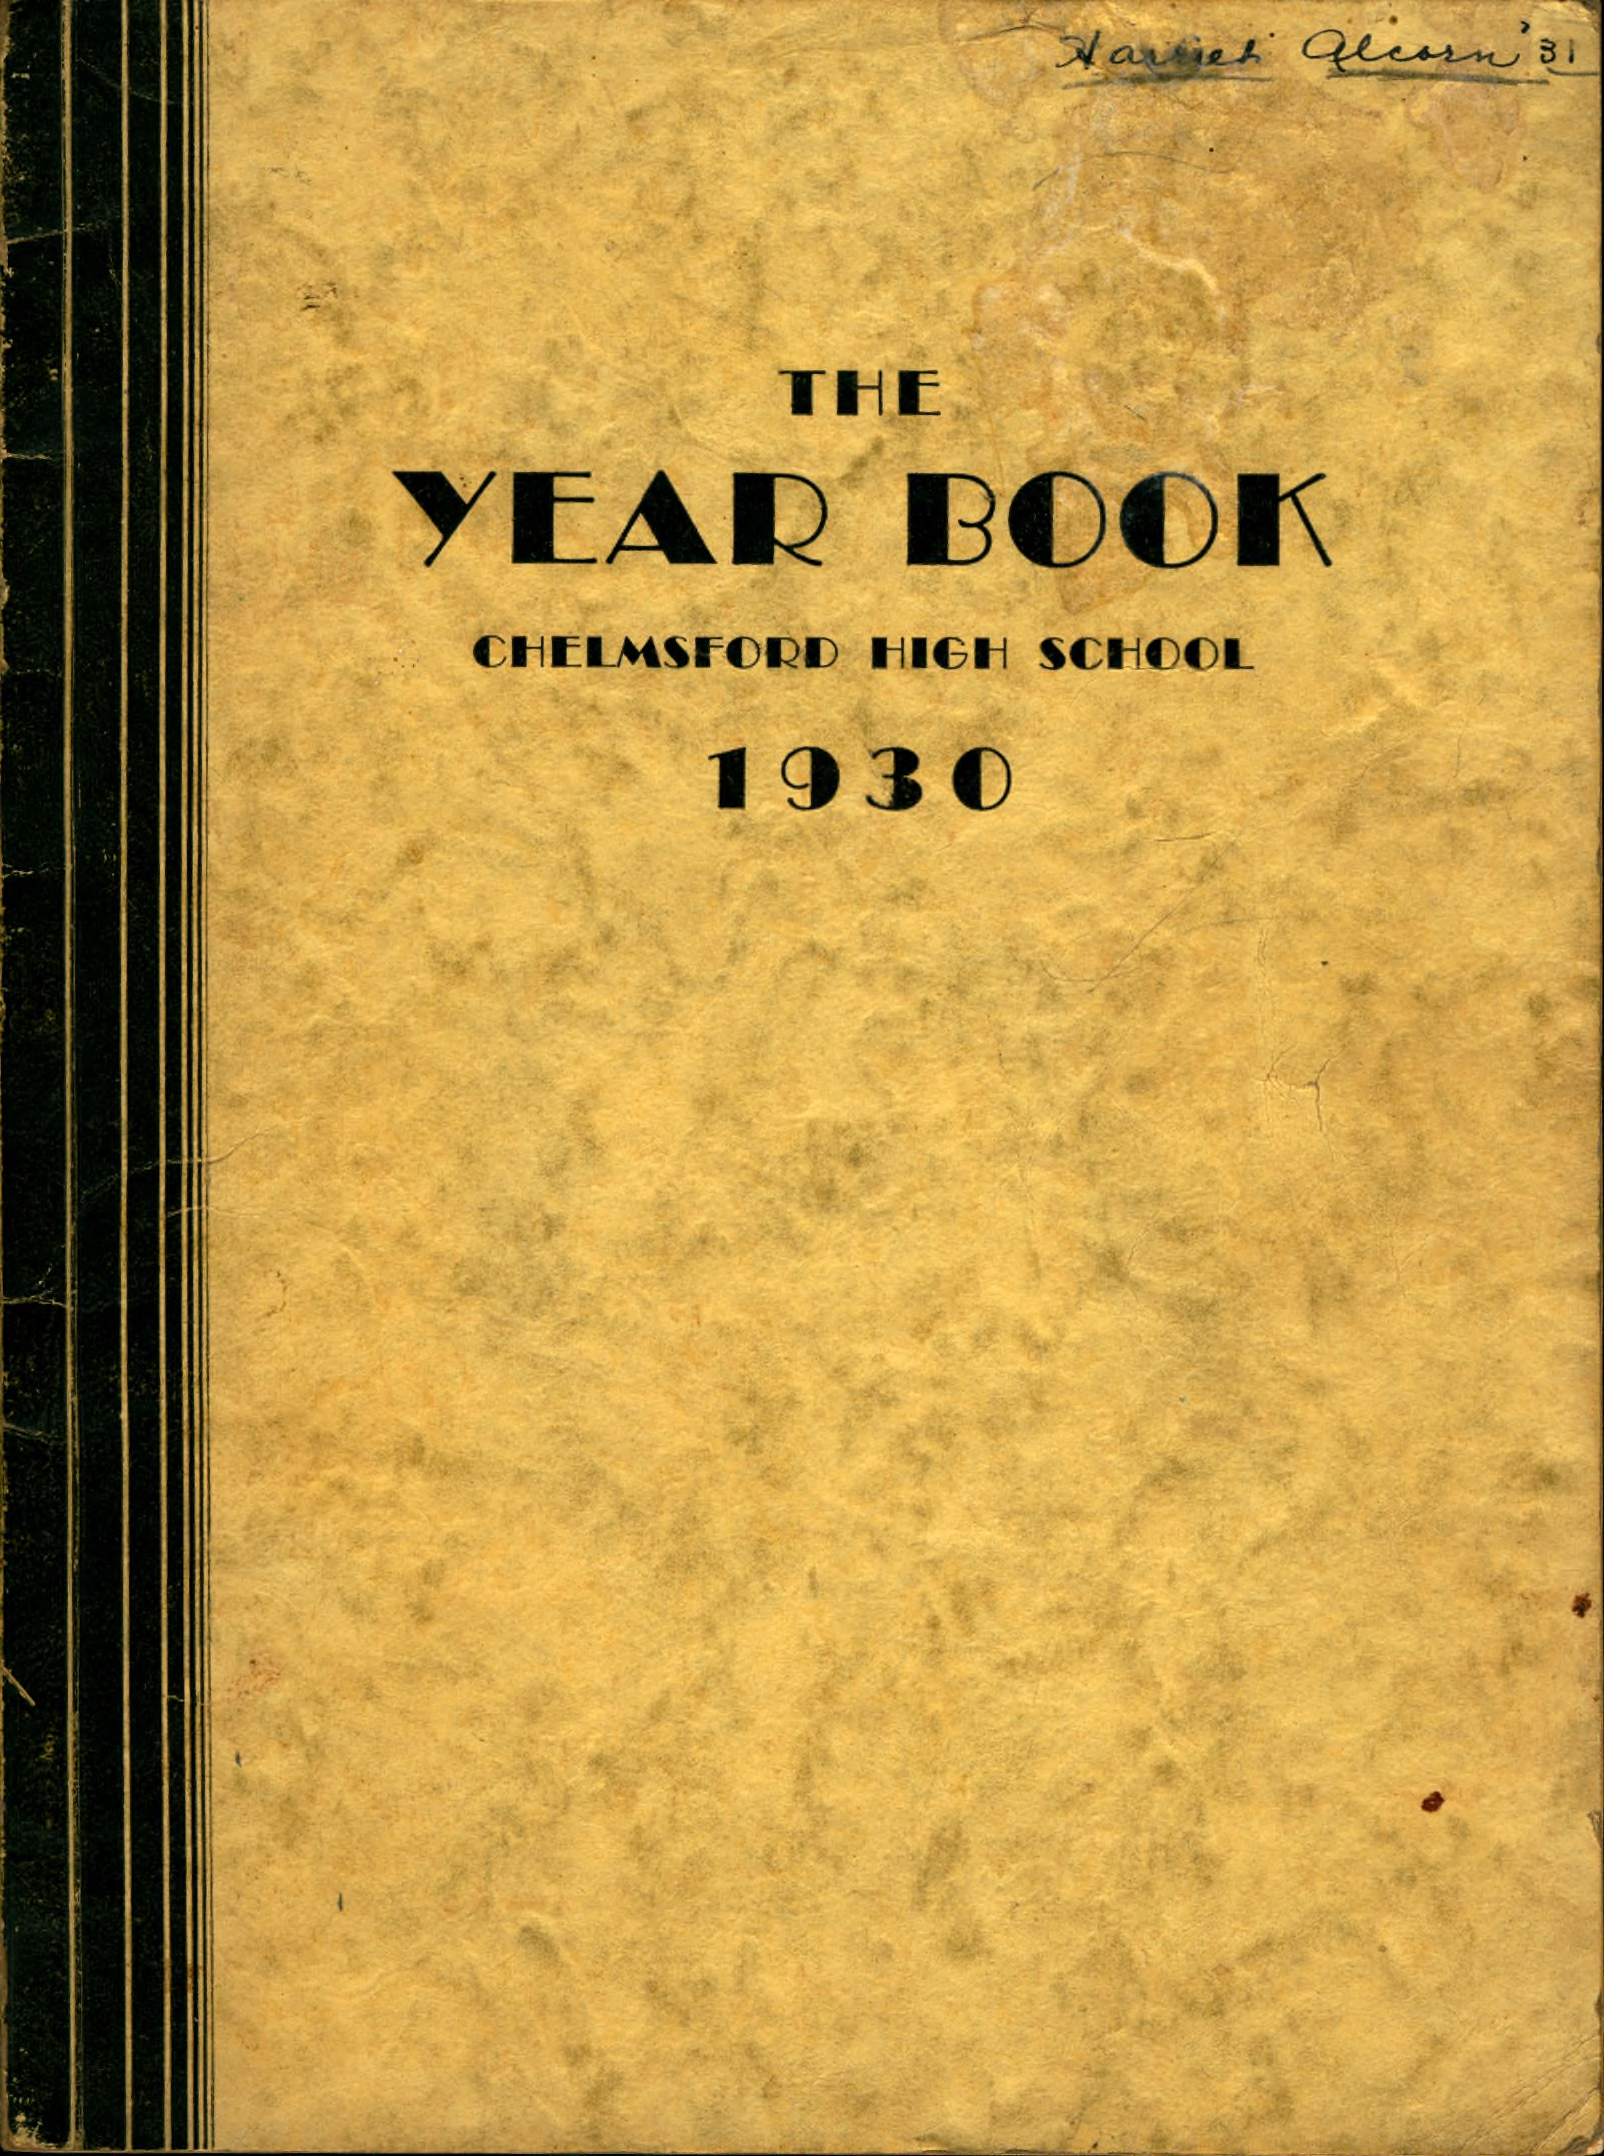 1930 Chelmsford High Yearbook 1